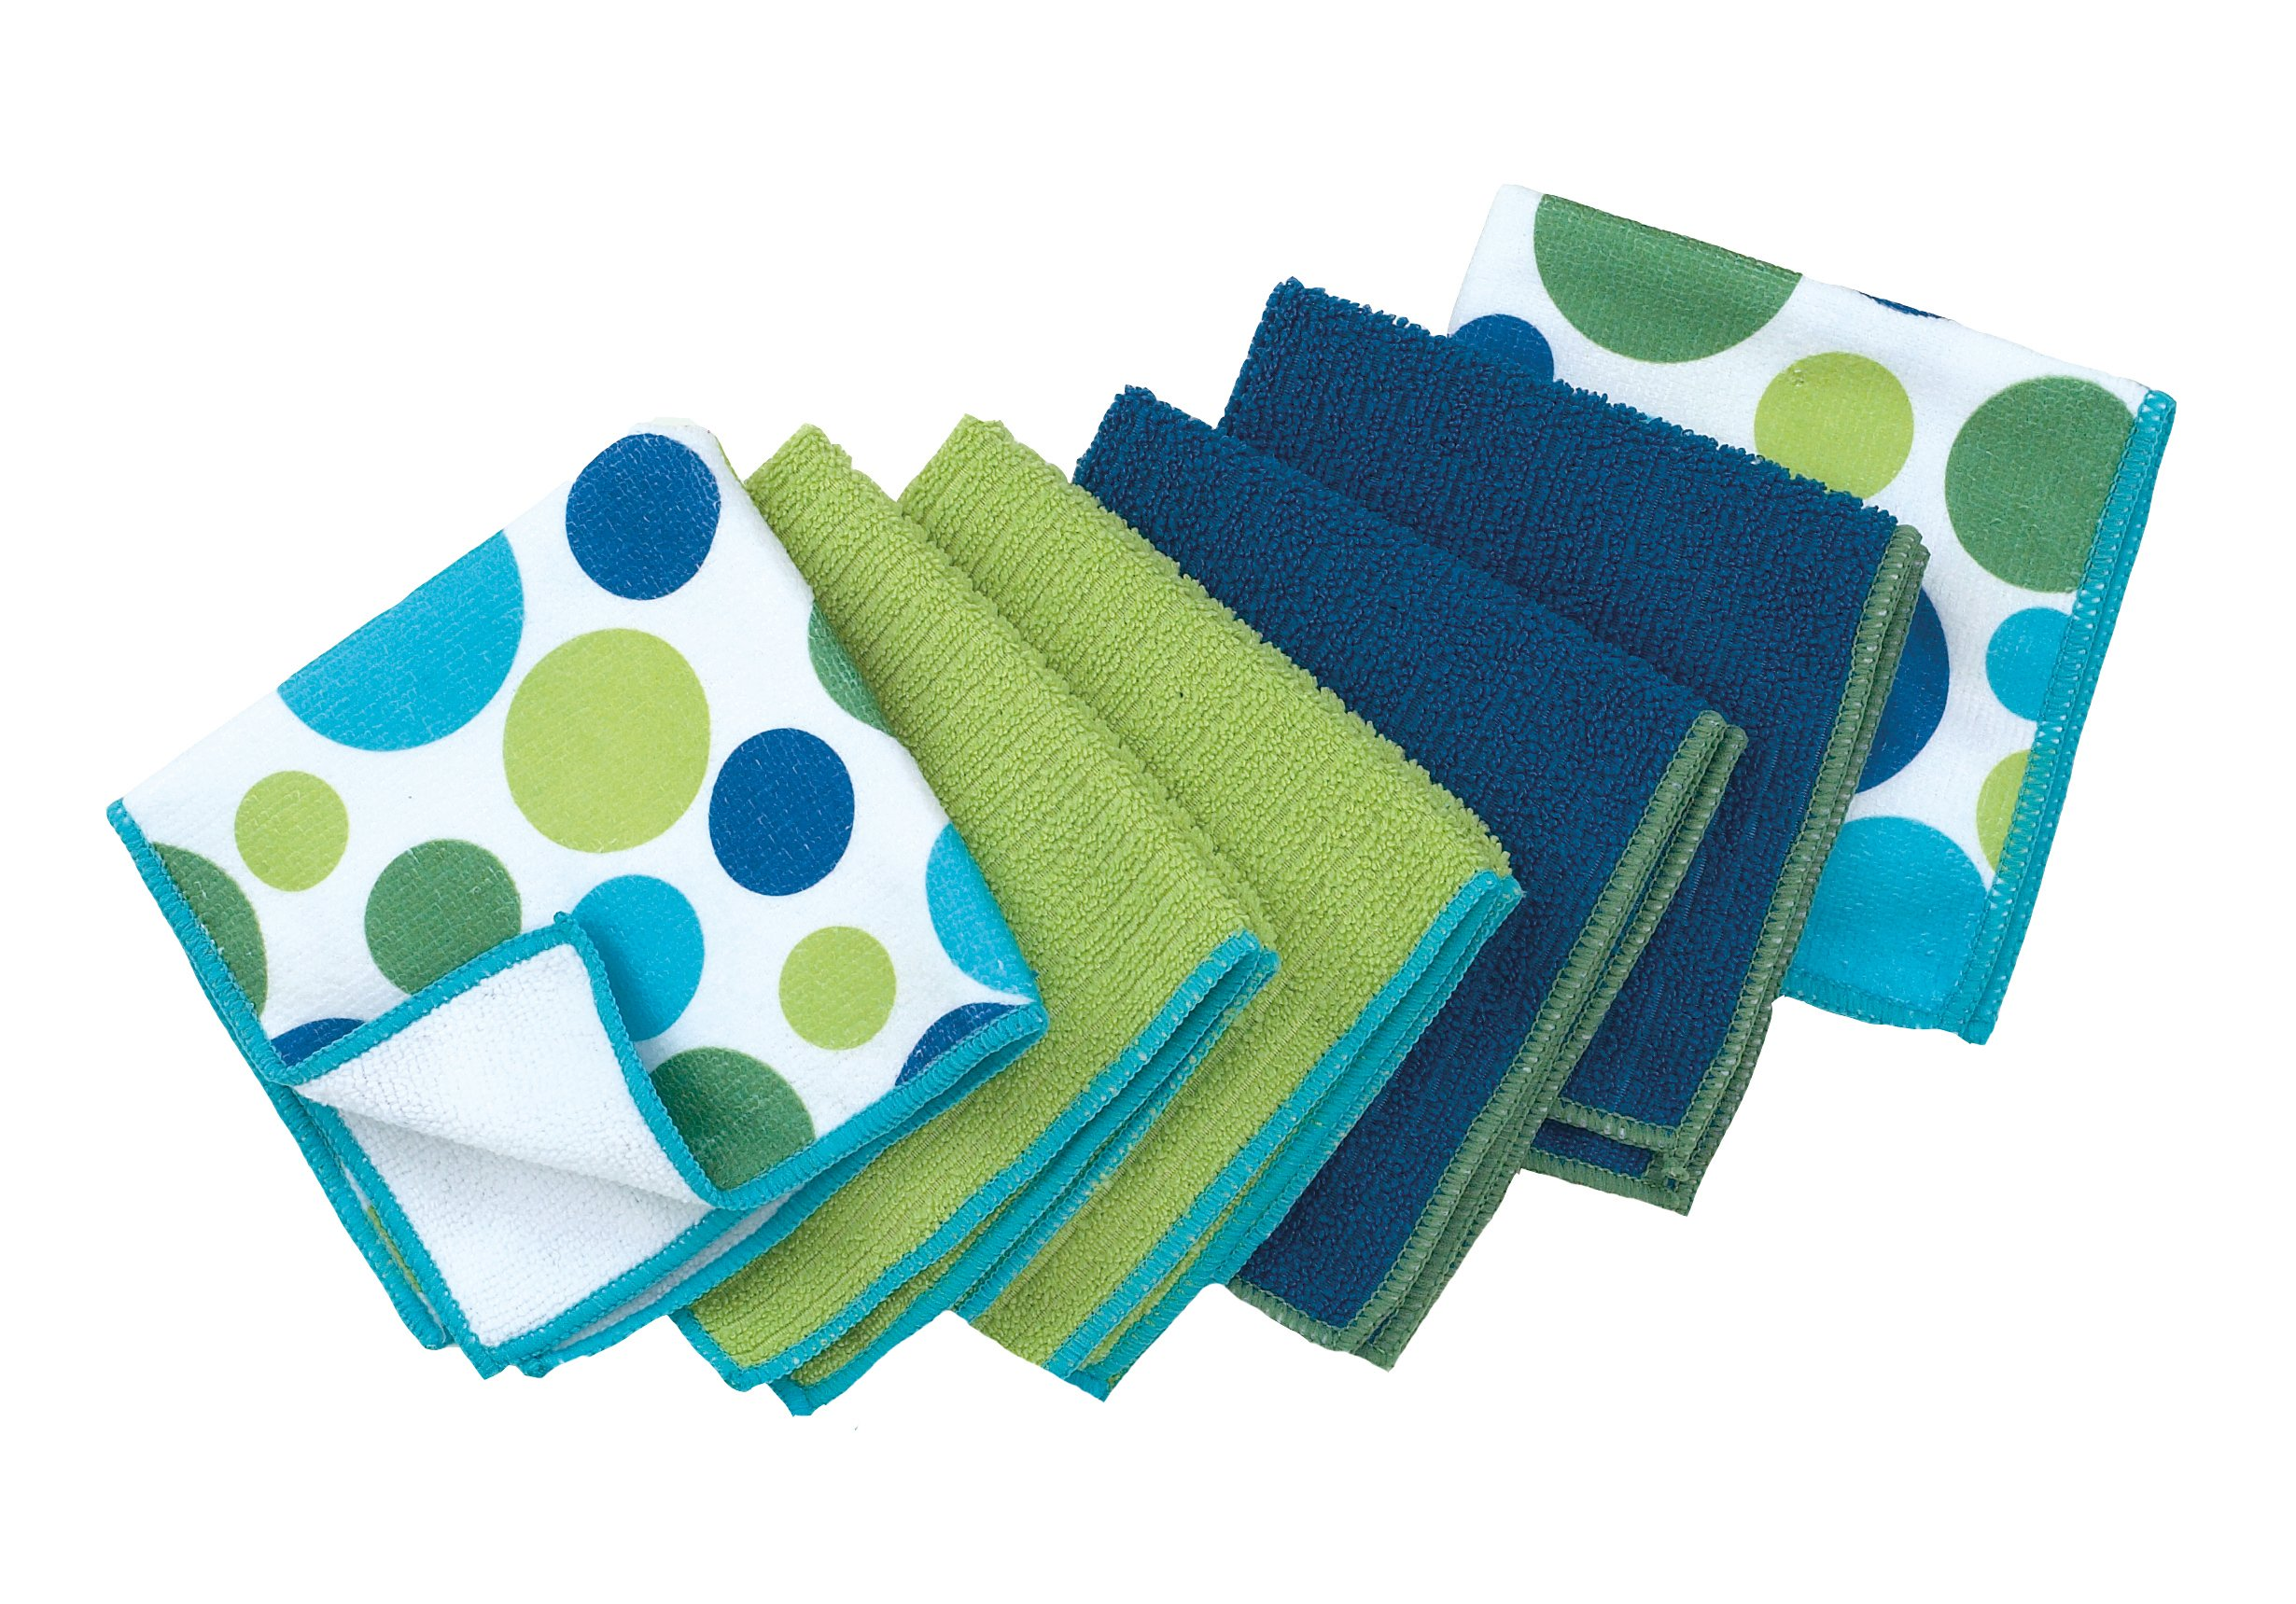 Ritz Microfiber 12 by 12-Inch 2 Polka Dot and 4 Solid Kitchen Dish Towels, Blue/Green, 6-Pack